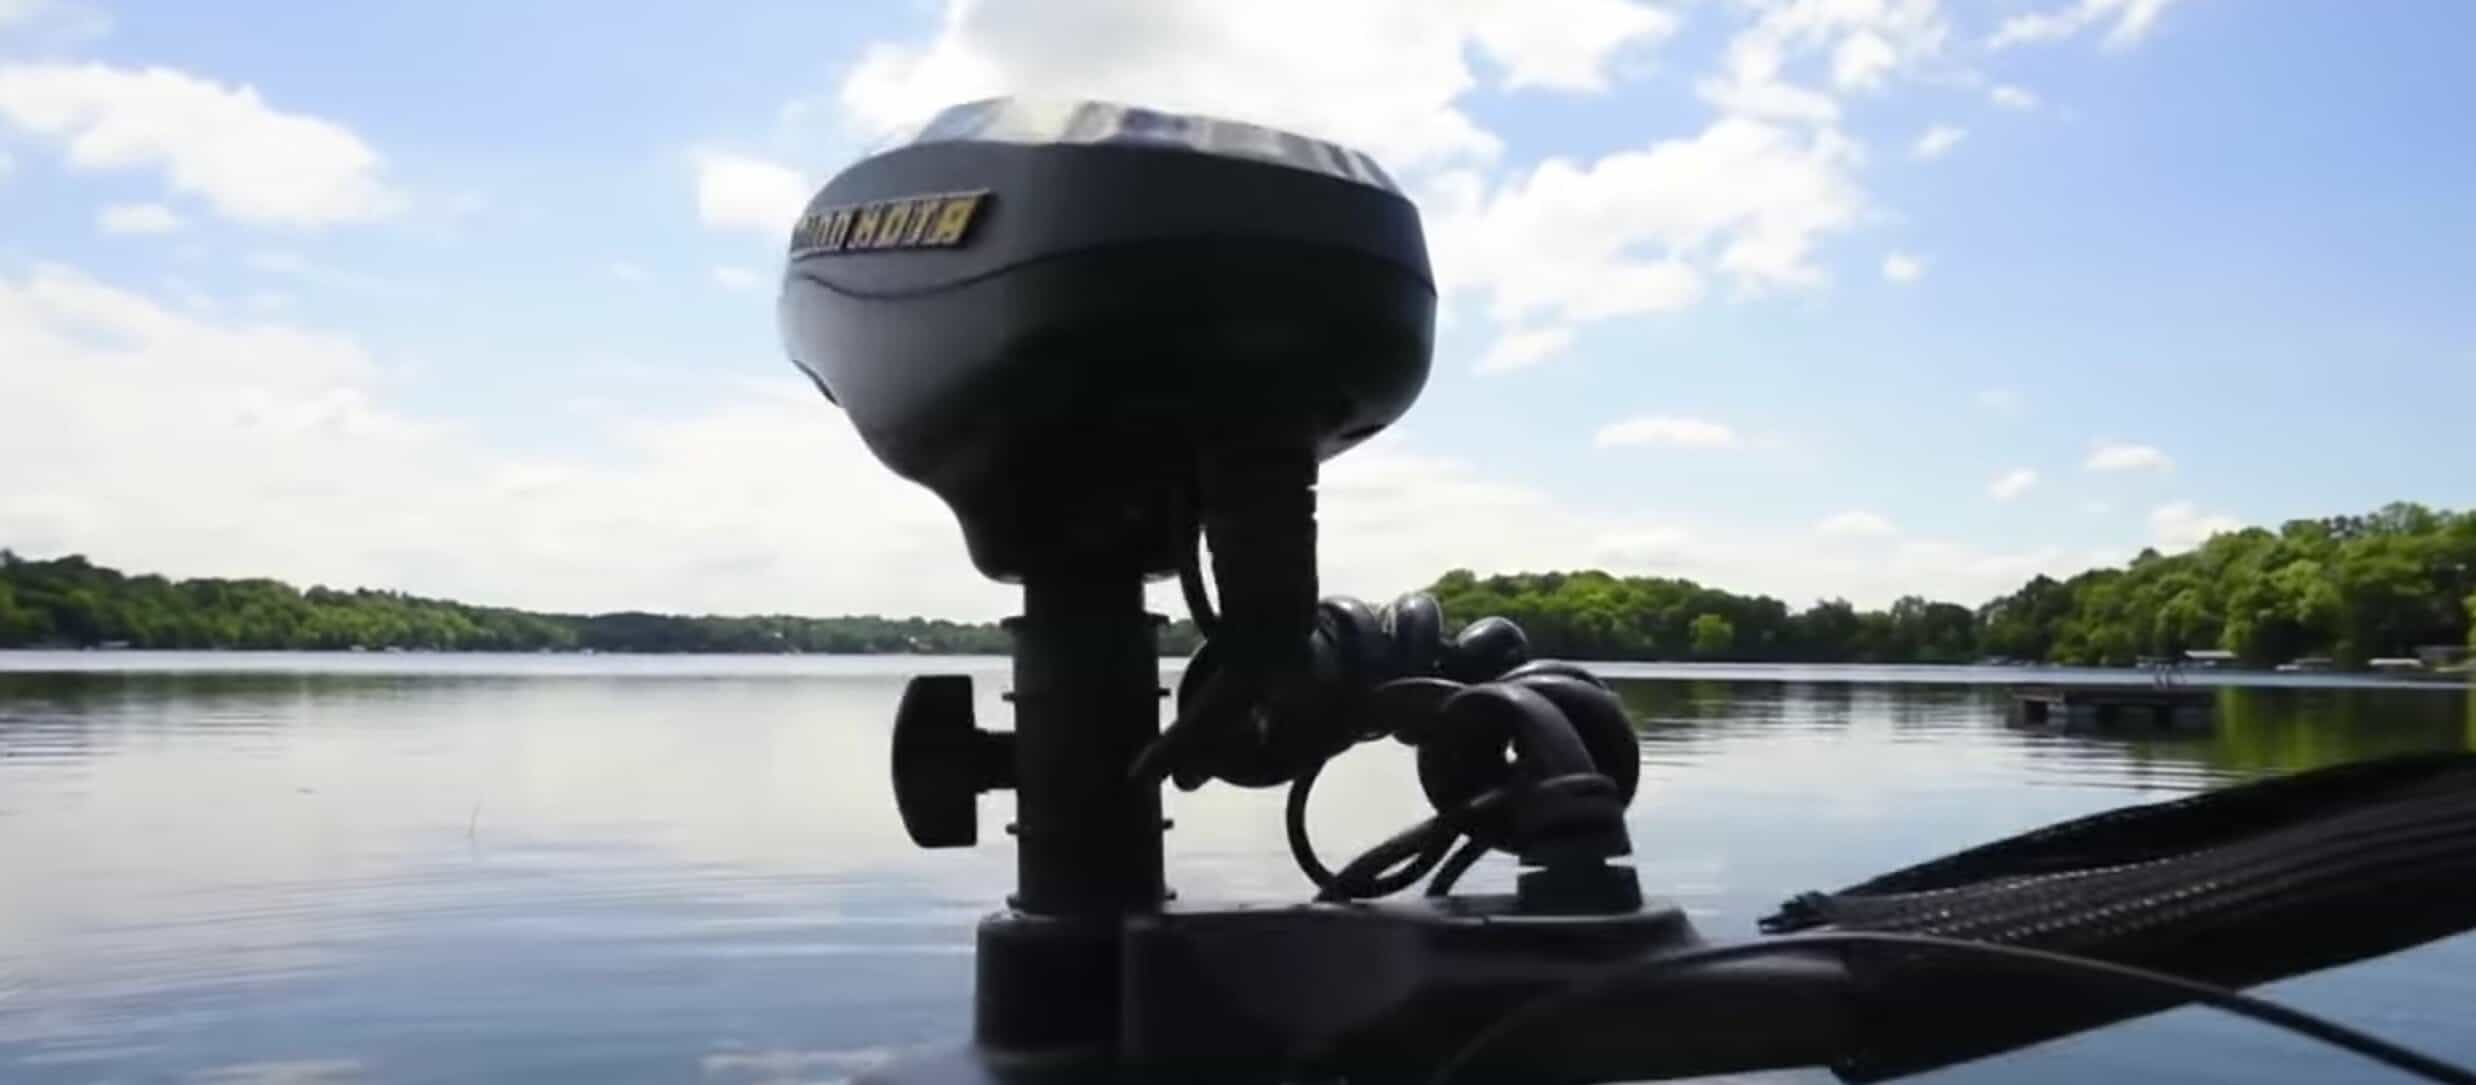 Pontoon boat trolling motor shaft length for Minn kota trolling motors for pontoon boats